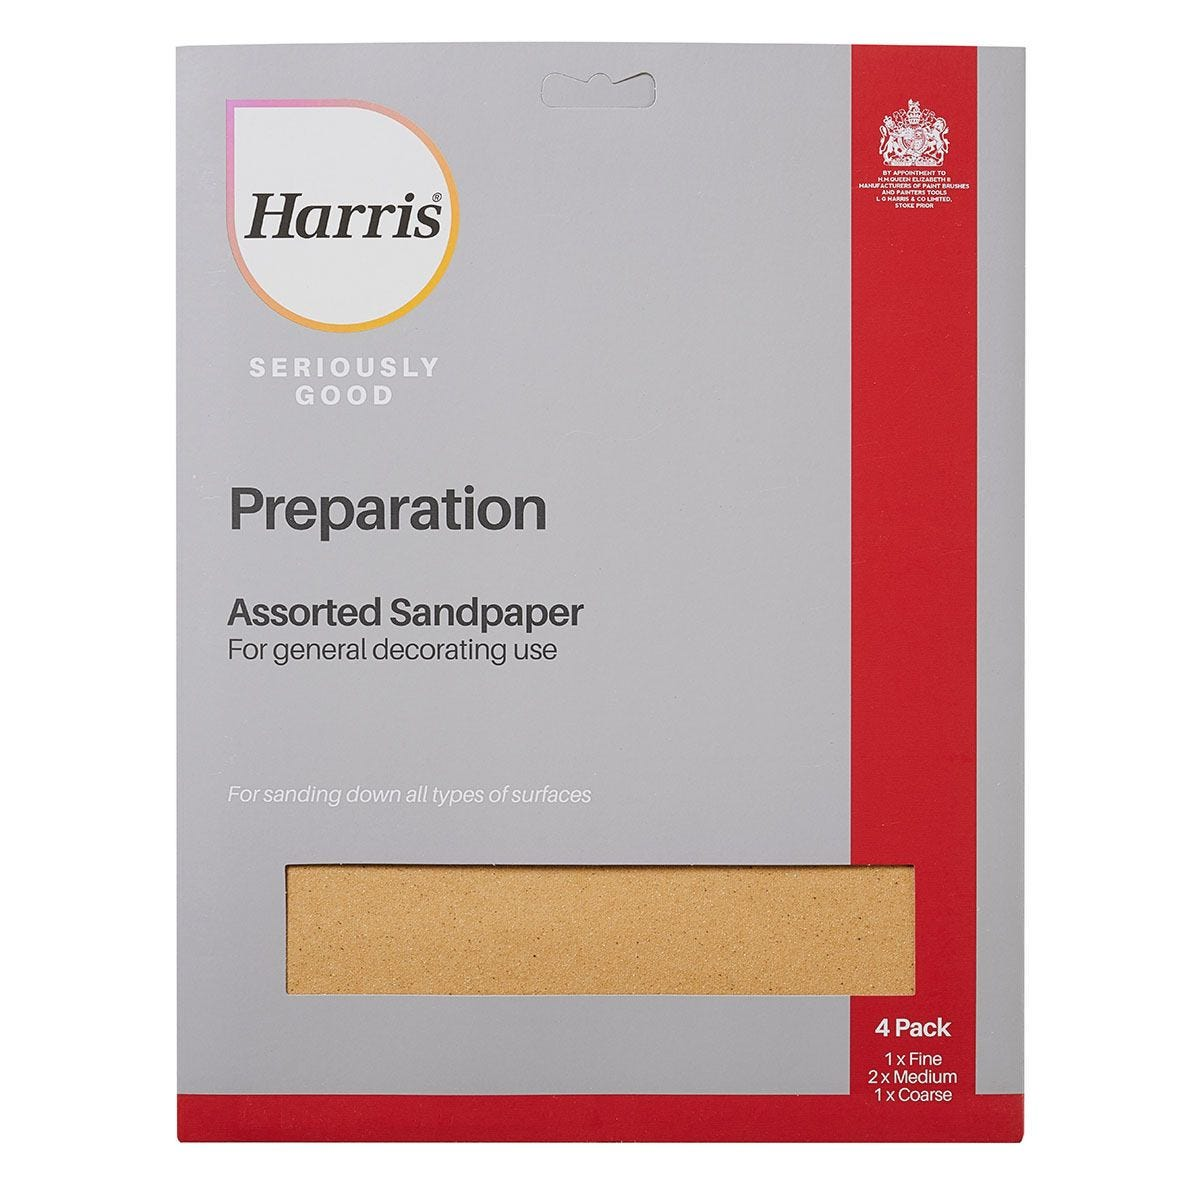 Harris Seriously Good Assorted Sandpaper - Pack of 4 - Grey & Yellow